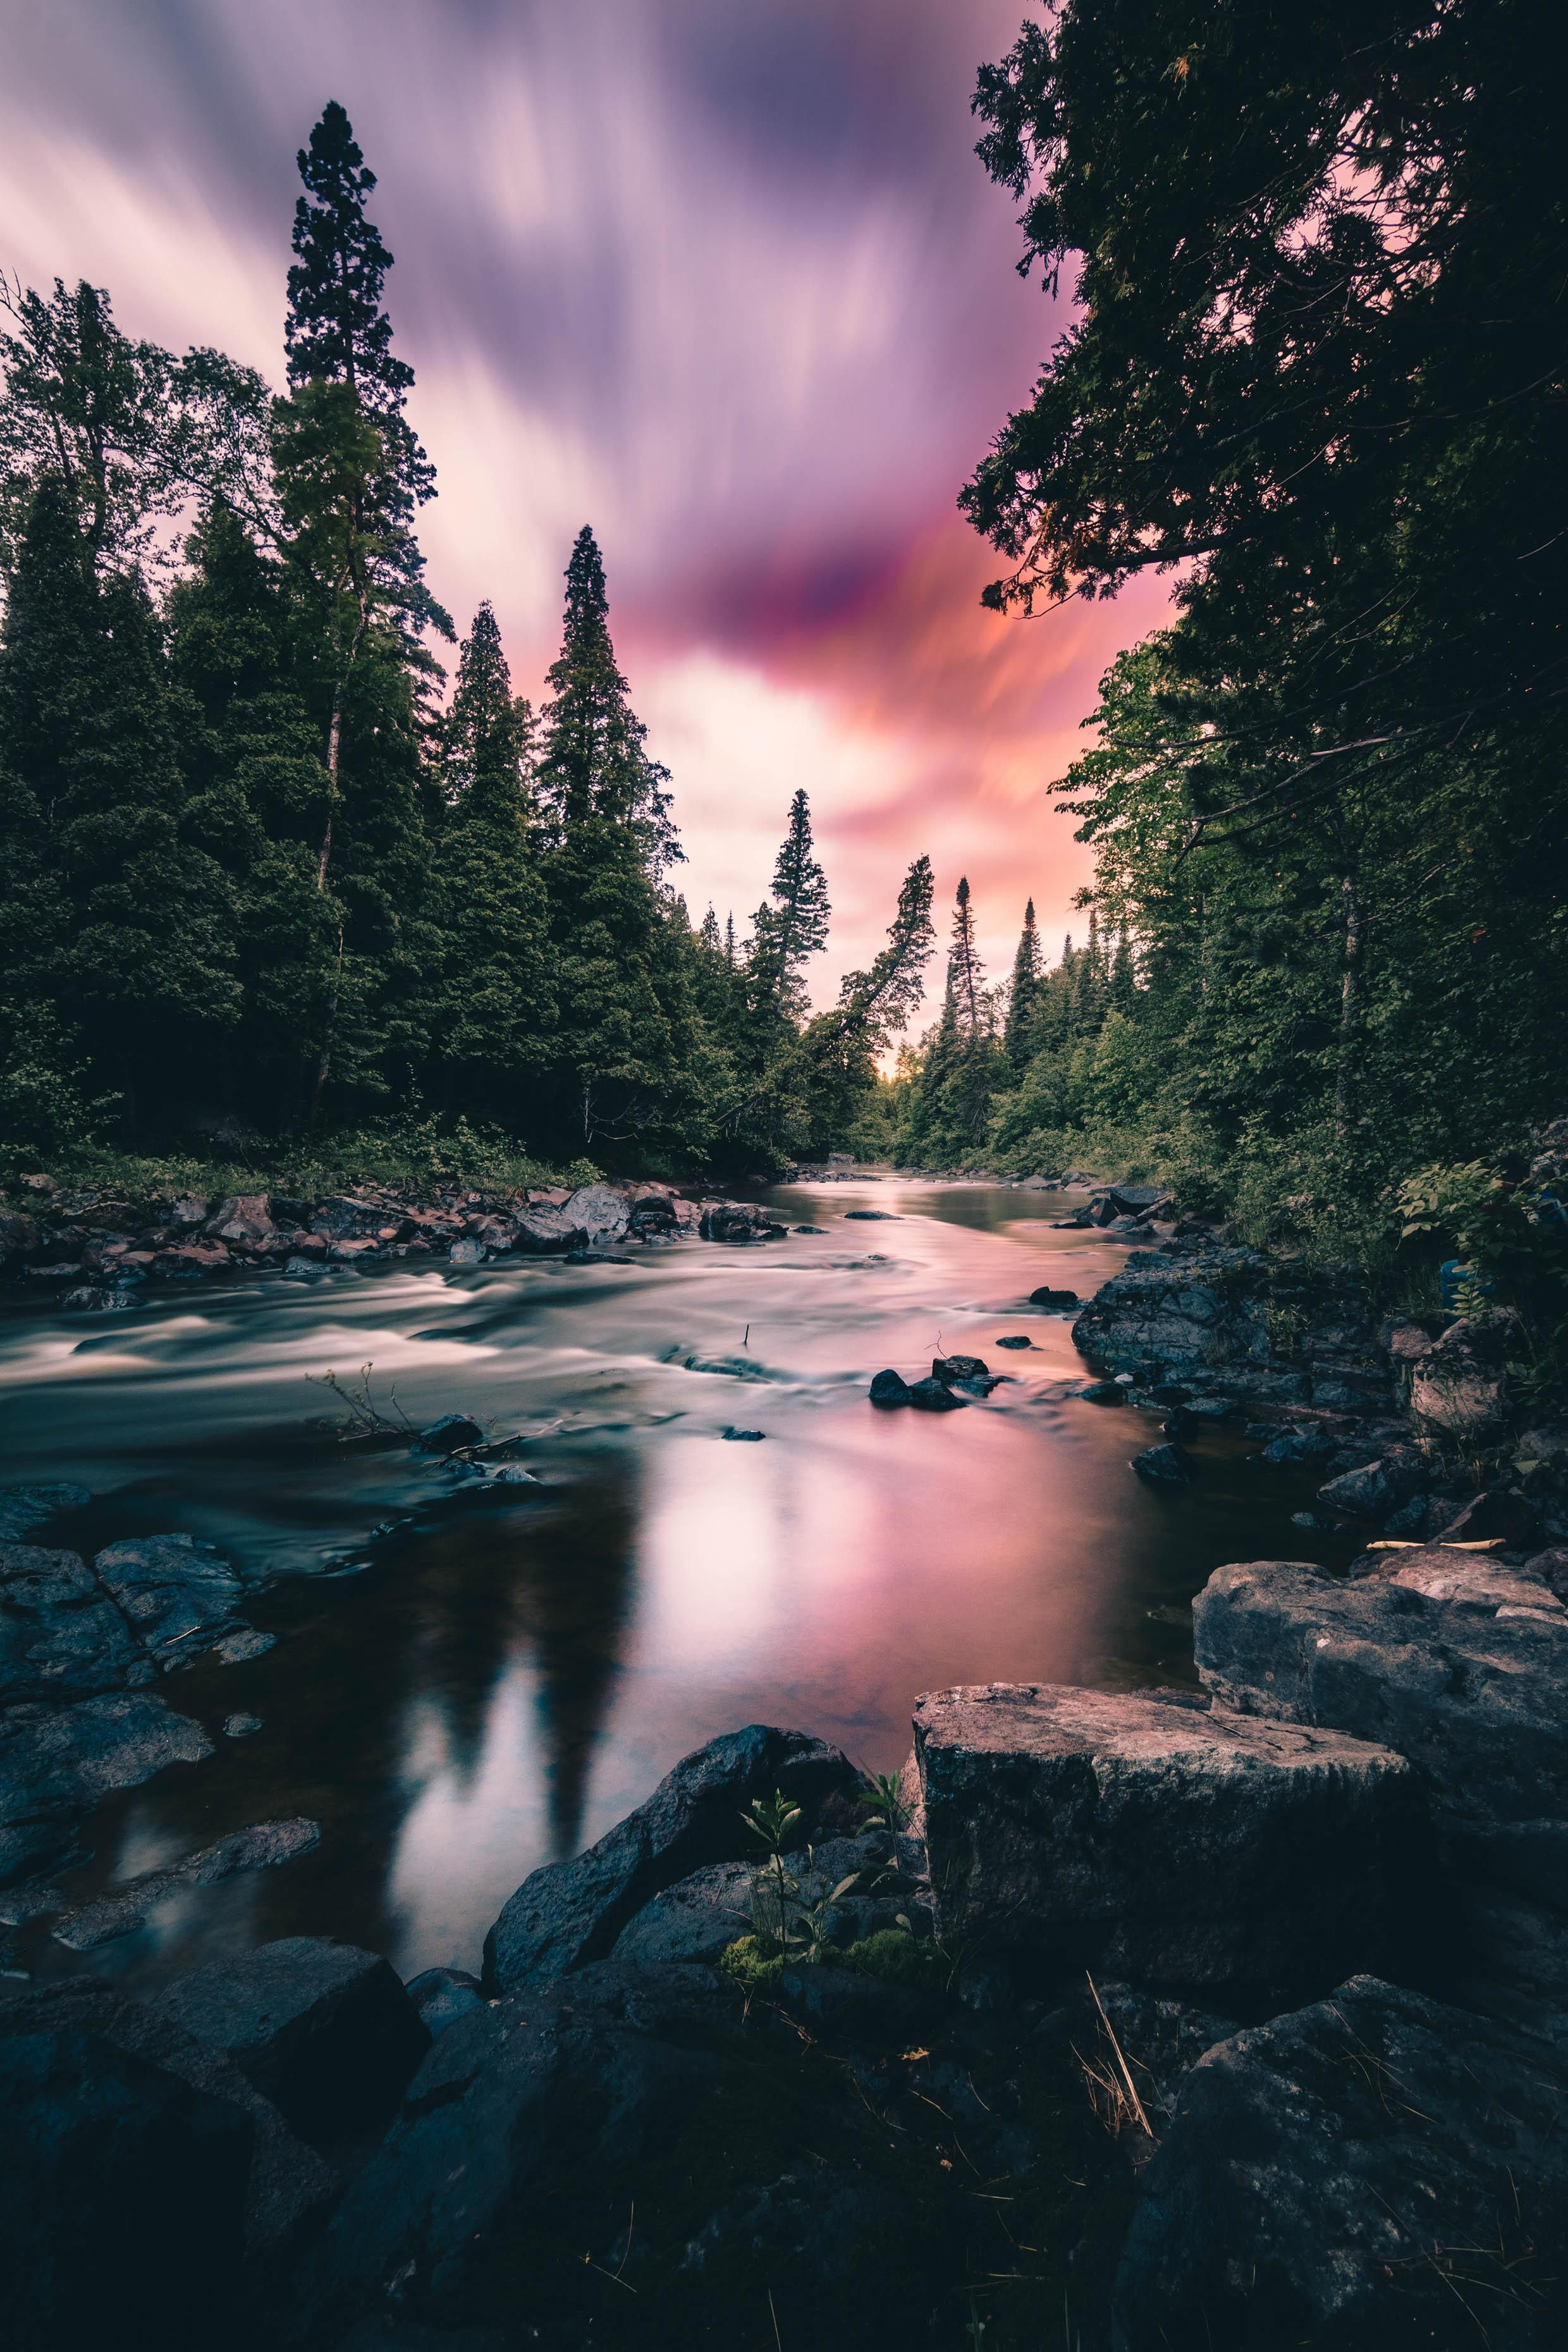 Interesting Photo Of The Day River Sunset With Nd Filter Nature Photography Nature Pictures Landscape Photography